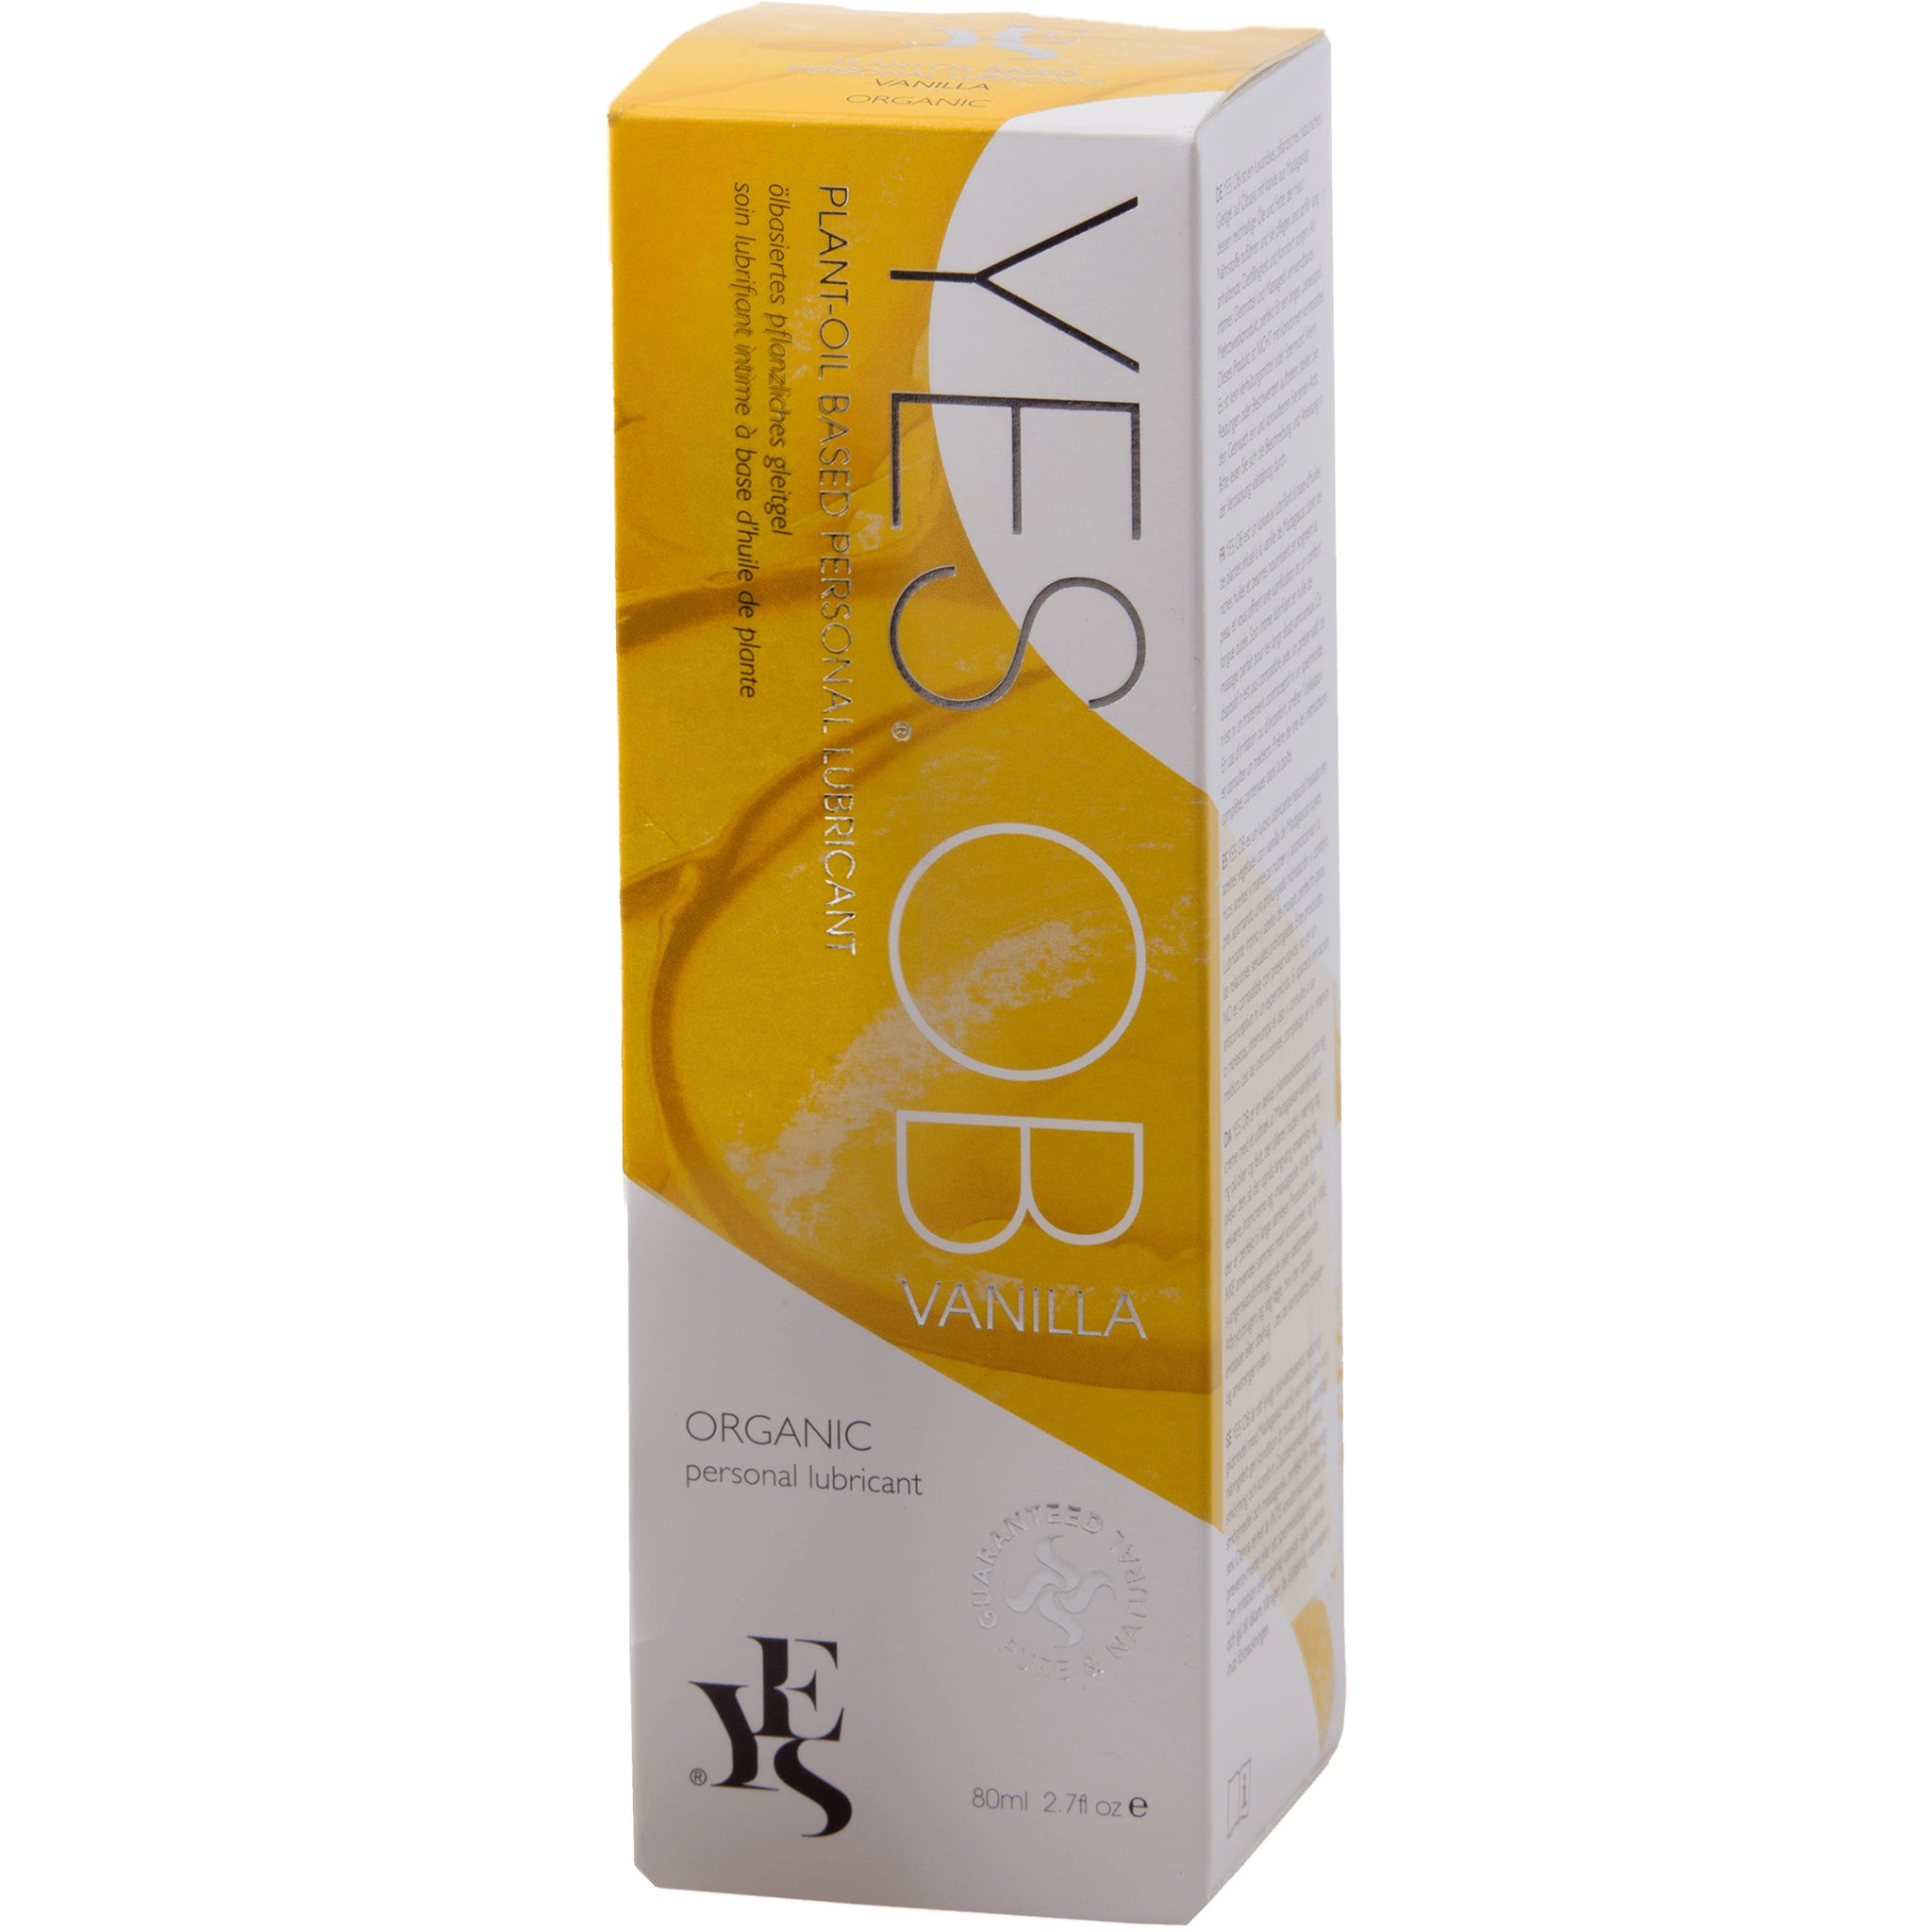 YES oil-based Natural Personal Lubricant with Madagascan Vanilla